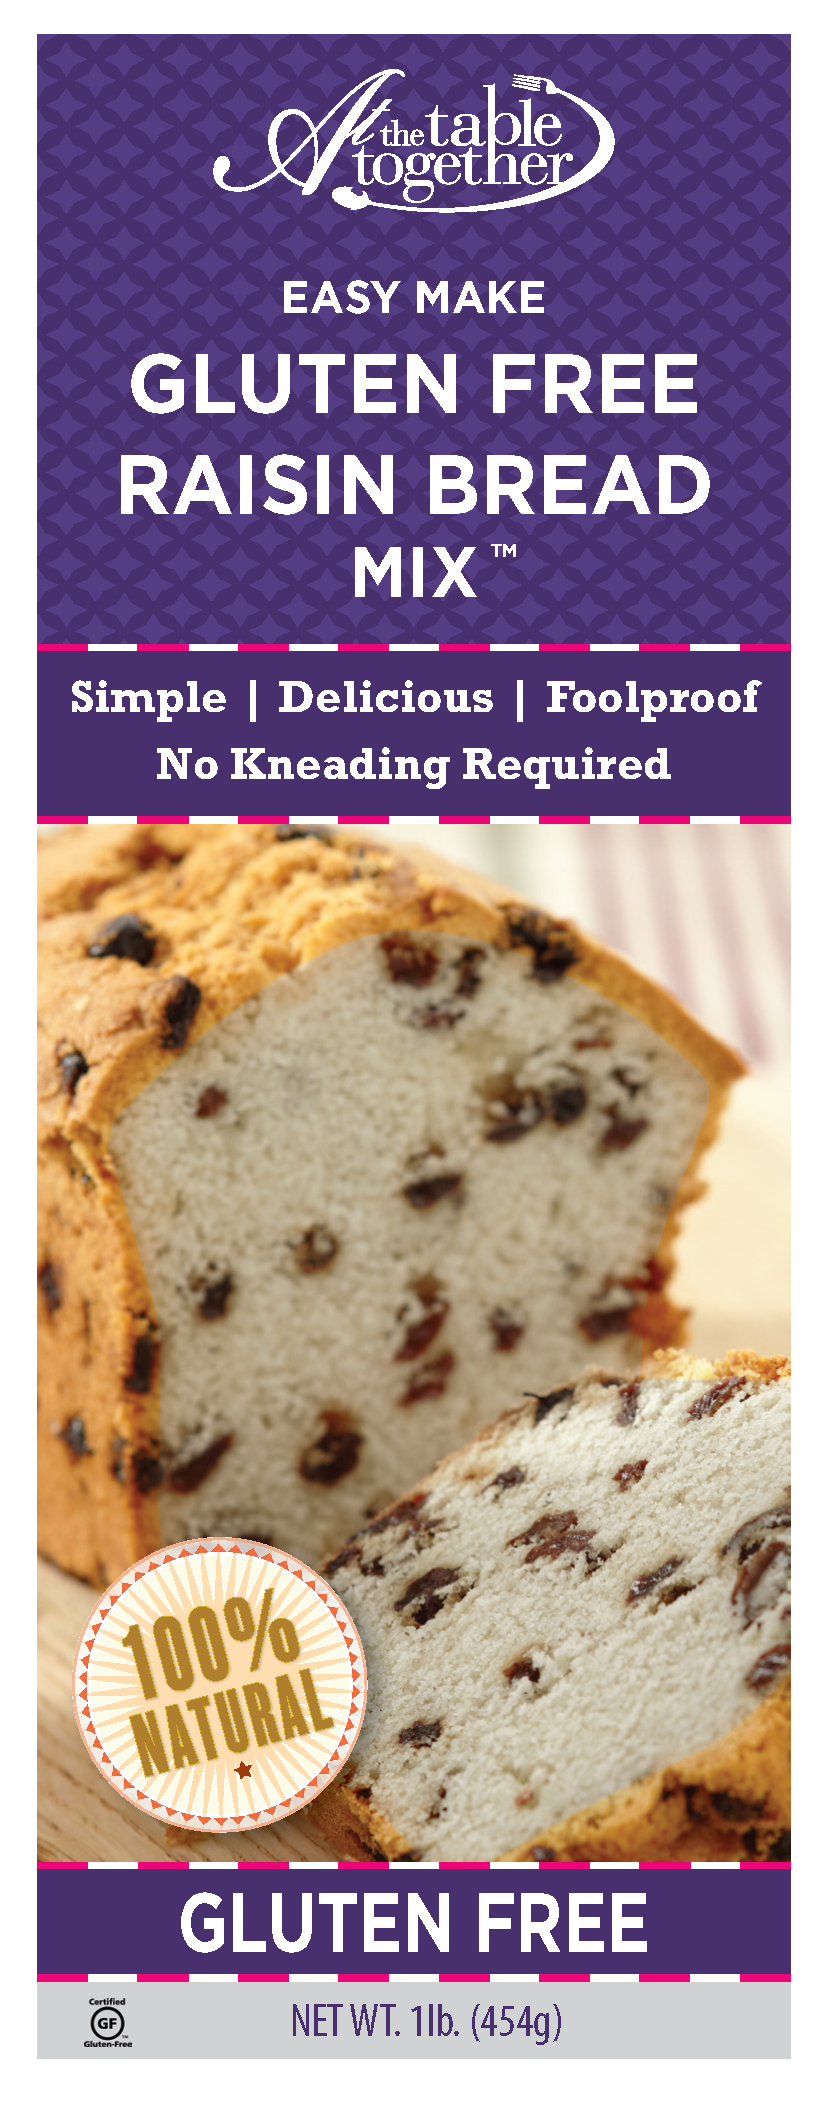 Gluten Free Raisin Bread Mix - At The Table Together